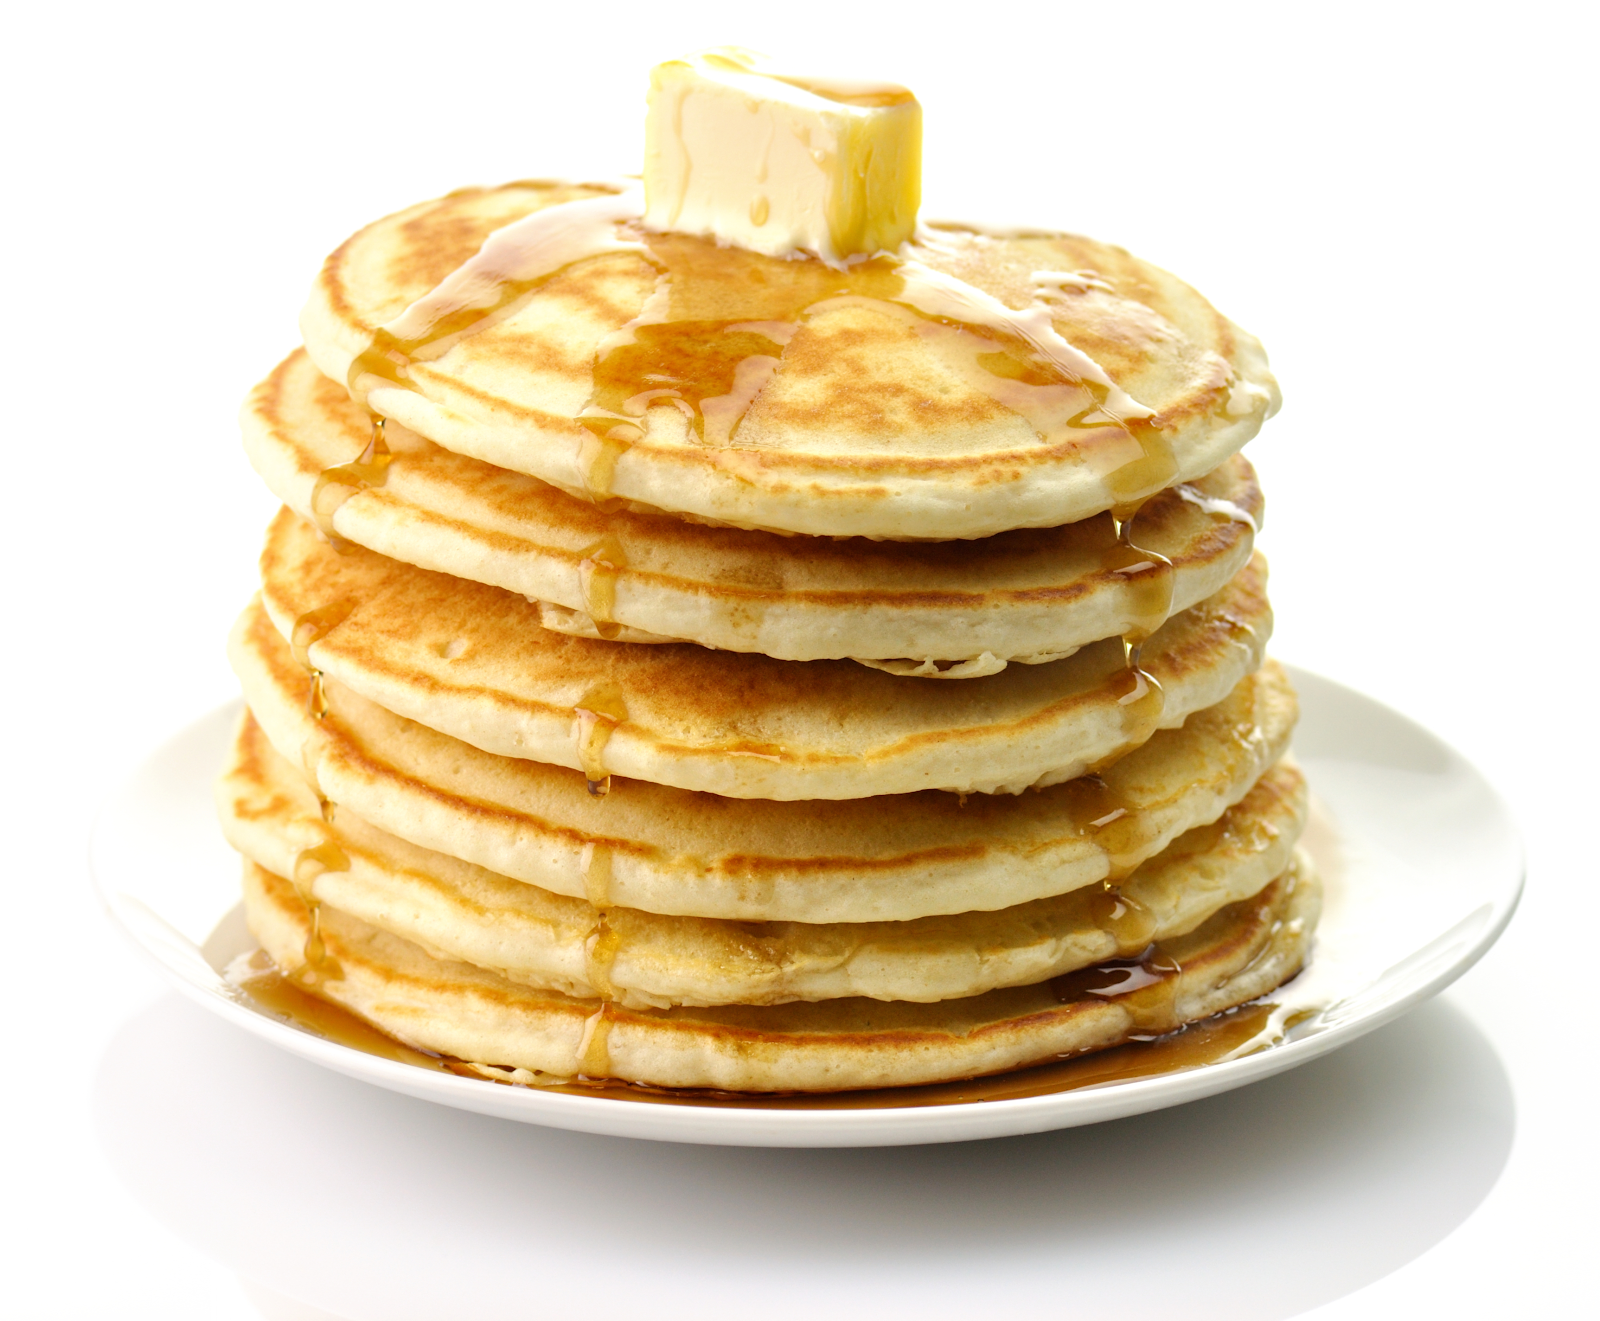 Stack Of Pancakes With Syrup And Butter On White Plate